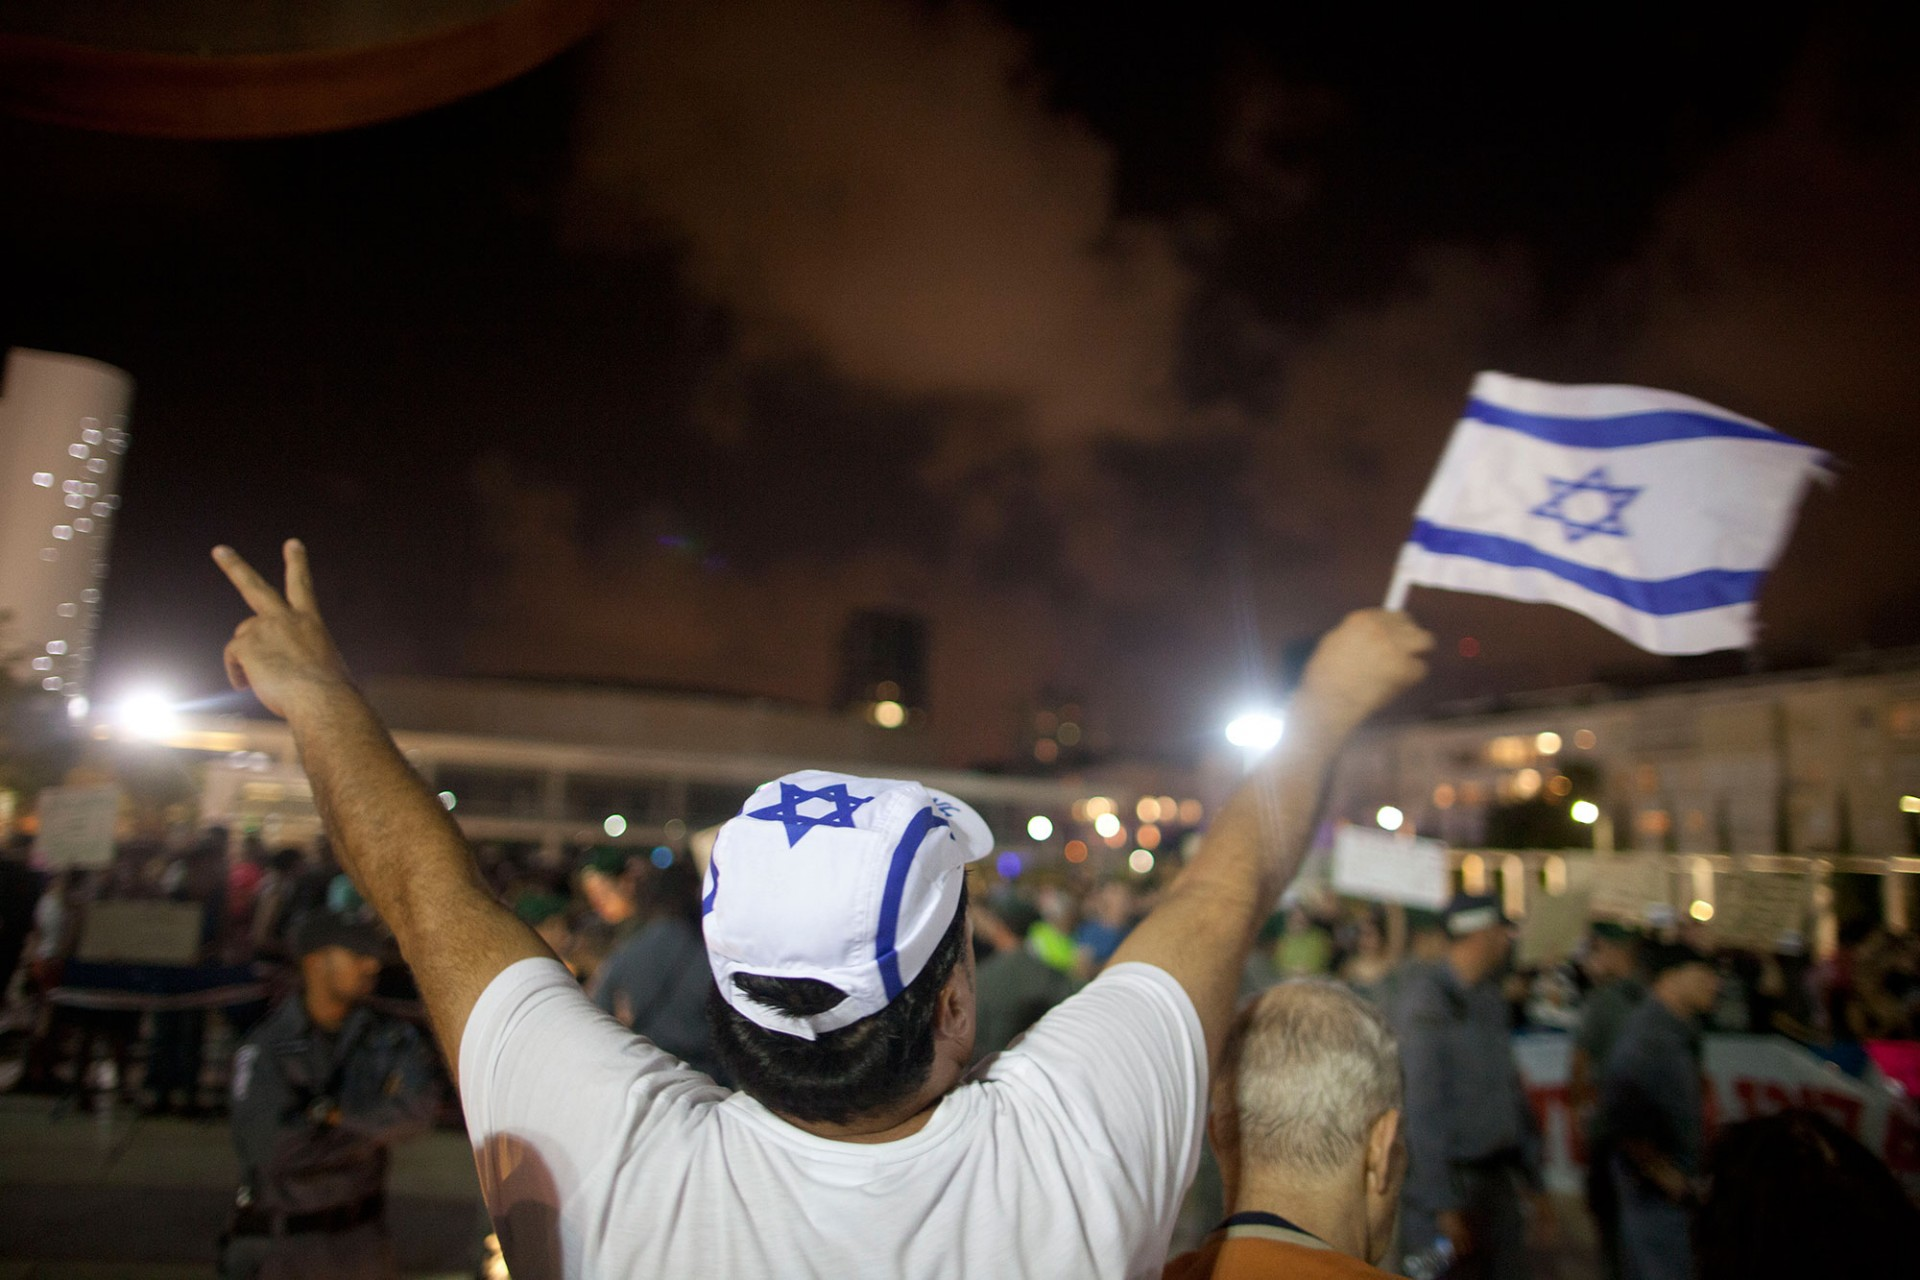 Israelis demonstrate in support of Israel's military operation in the Gaza Strip on July 19, 2014 in Tel Aviv, Israel.